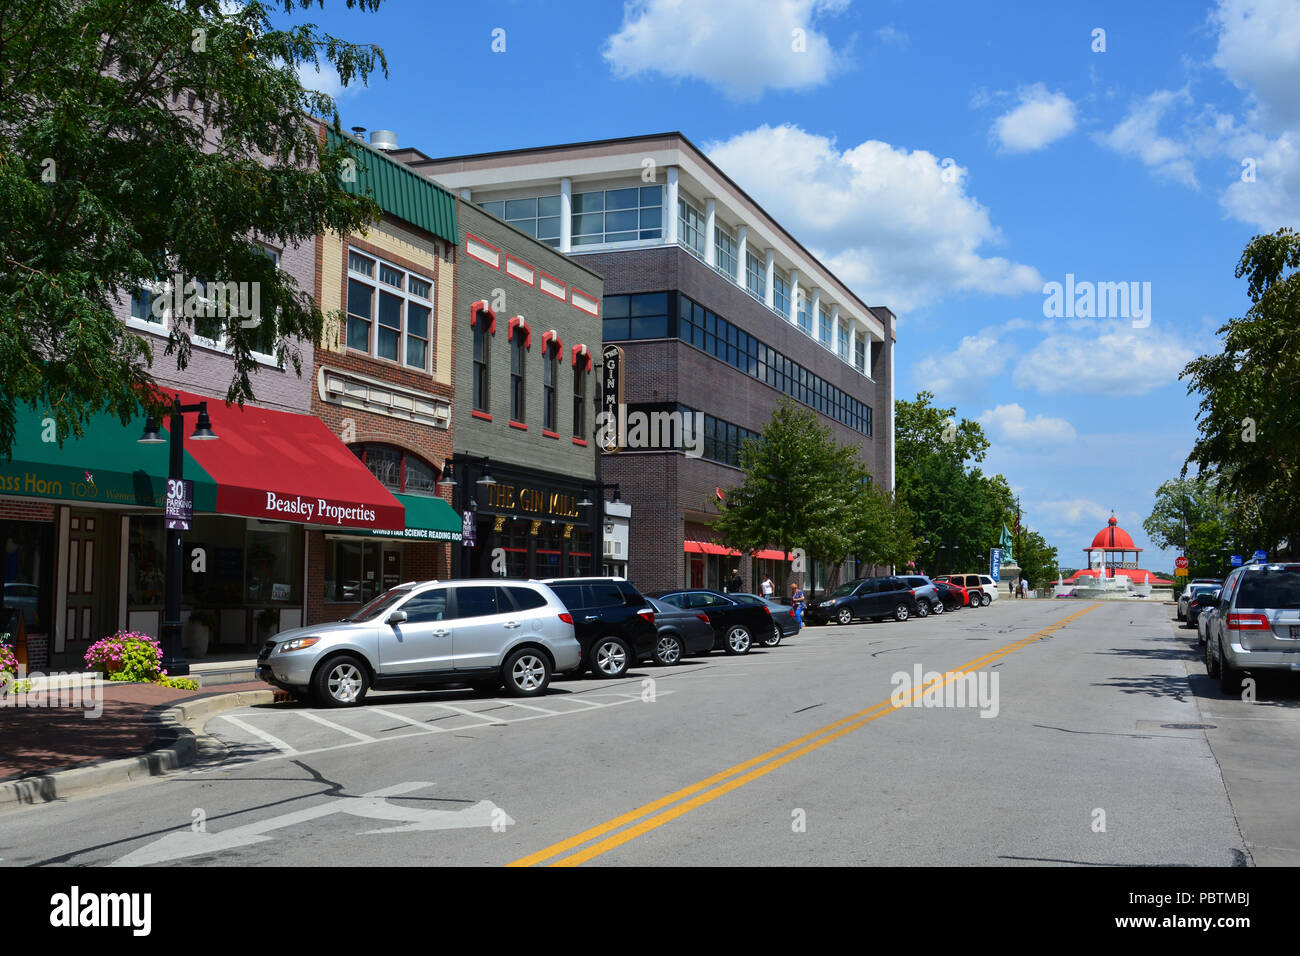 Looking down the Prairie Ave. business district with iconic transfer house at the far end in Decatur Illinois. - Stock Image